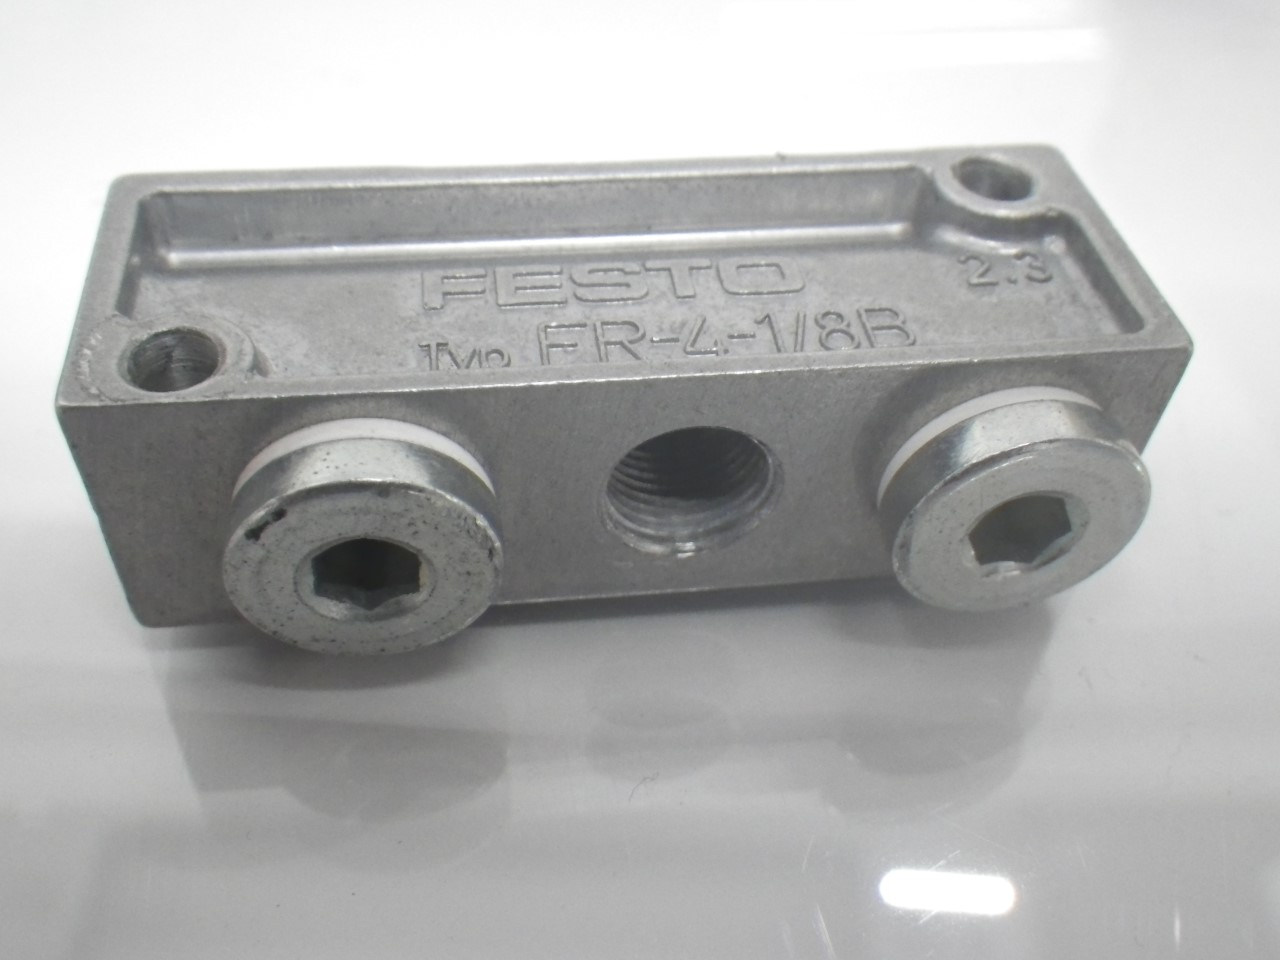 IMGP1109FR-4-18B Festo Pneumatic Distributor Block 4 Holes 5.6 x 2 x 1.6cm(Used Tested) (5)